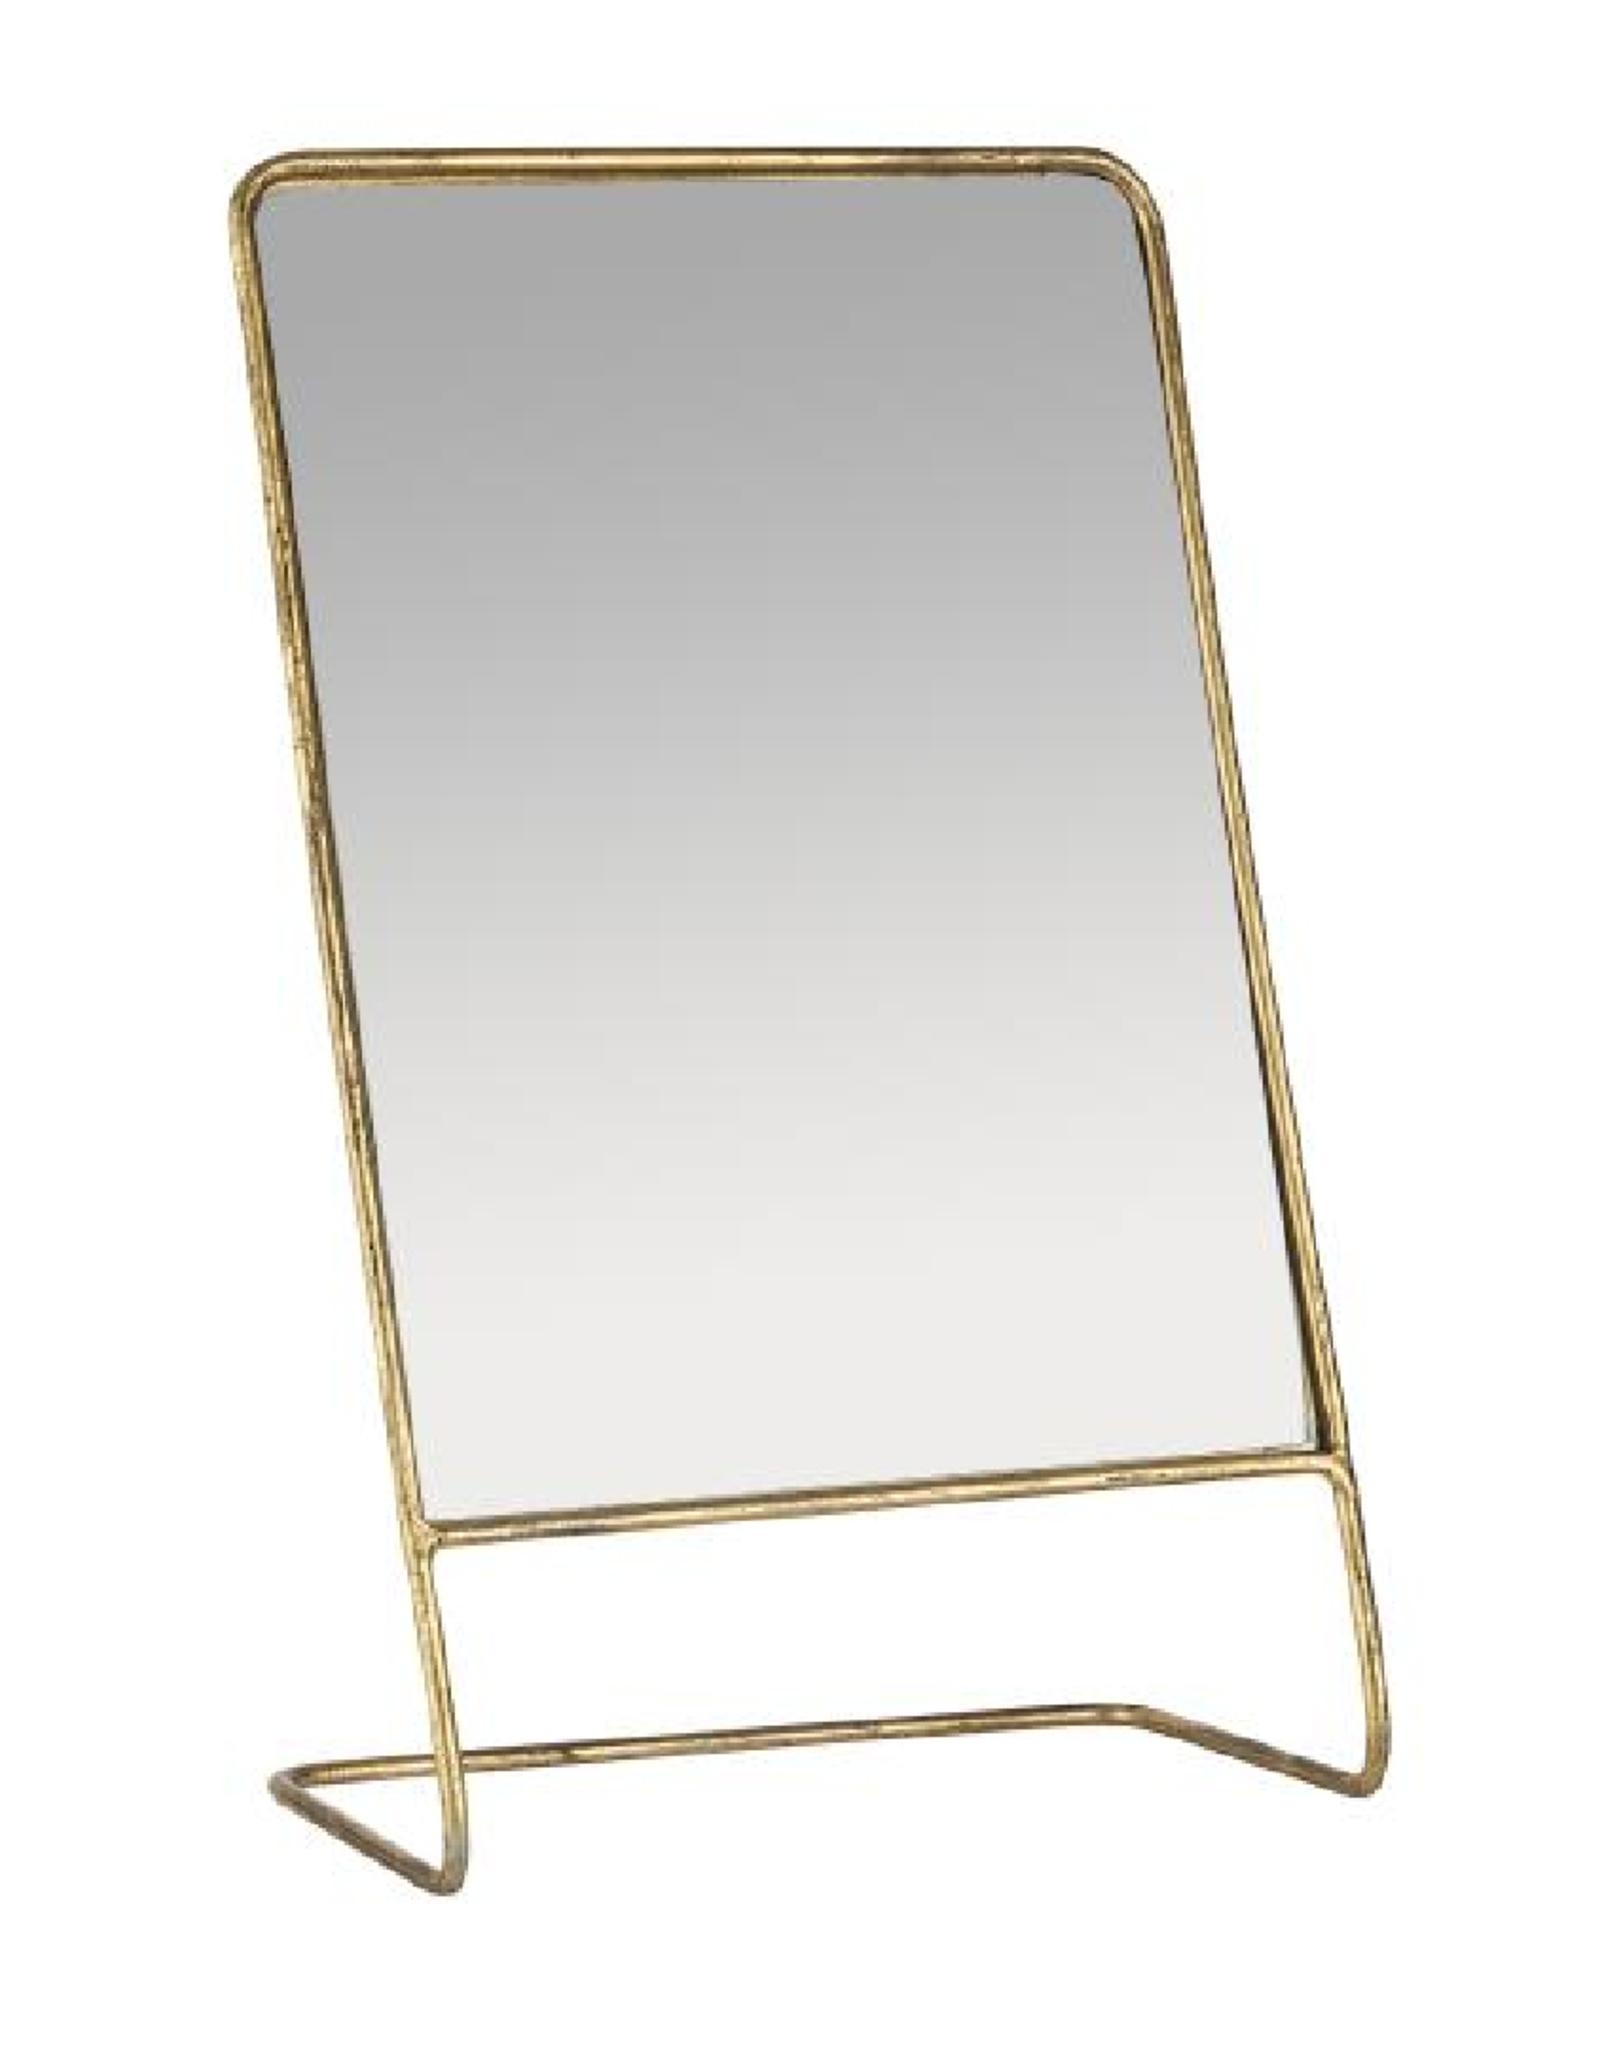 IBLaursen Table mirror brass